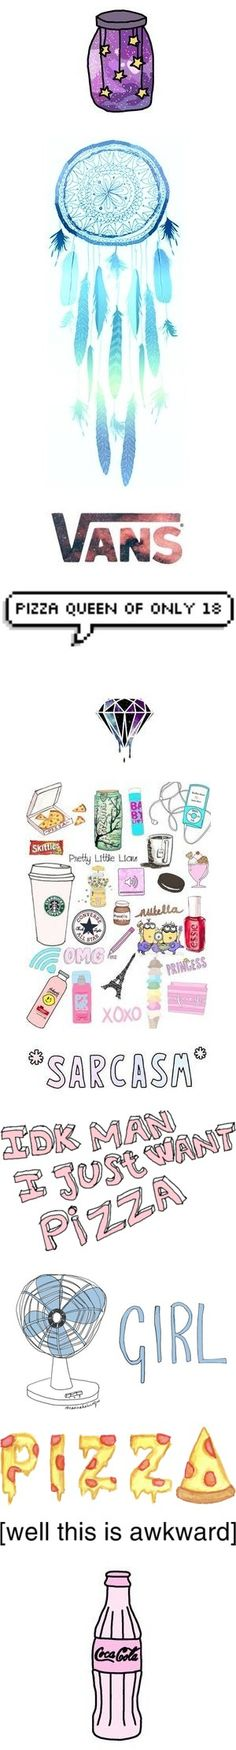 Icon and Wallpaper Fillers by swiftie4ever01 on Polyvore featuring polyvore, tumblr, icon, fillers, wallpaper, backgrounds, drawings, fillers - purple, decor, filler, words, doodle, scribble, text, quotes, phrase, saying, doodles, home, home decor, wall art, phrases, detail, embellishment, quote wall art, word wall art, typography wall art, transparents, borders, picture frame, pink, speech bubbles, effect, pokemon, anime, art, pictures, effects, magazine, animals, hearts, rainbow, 5sos…